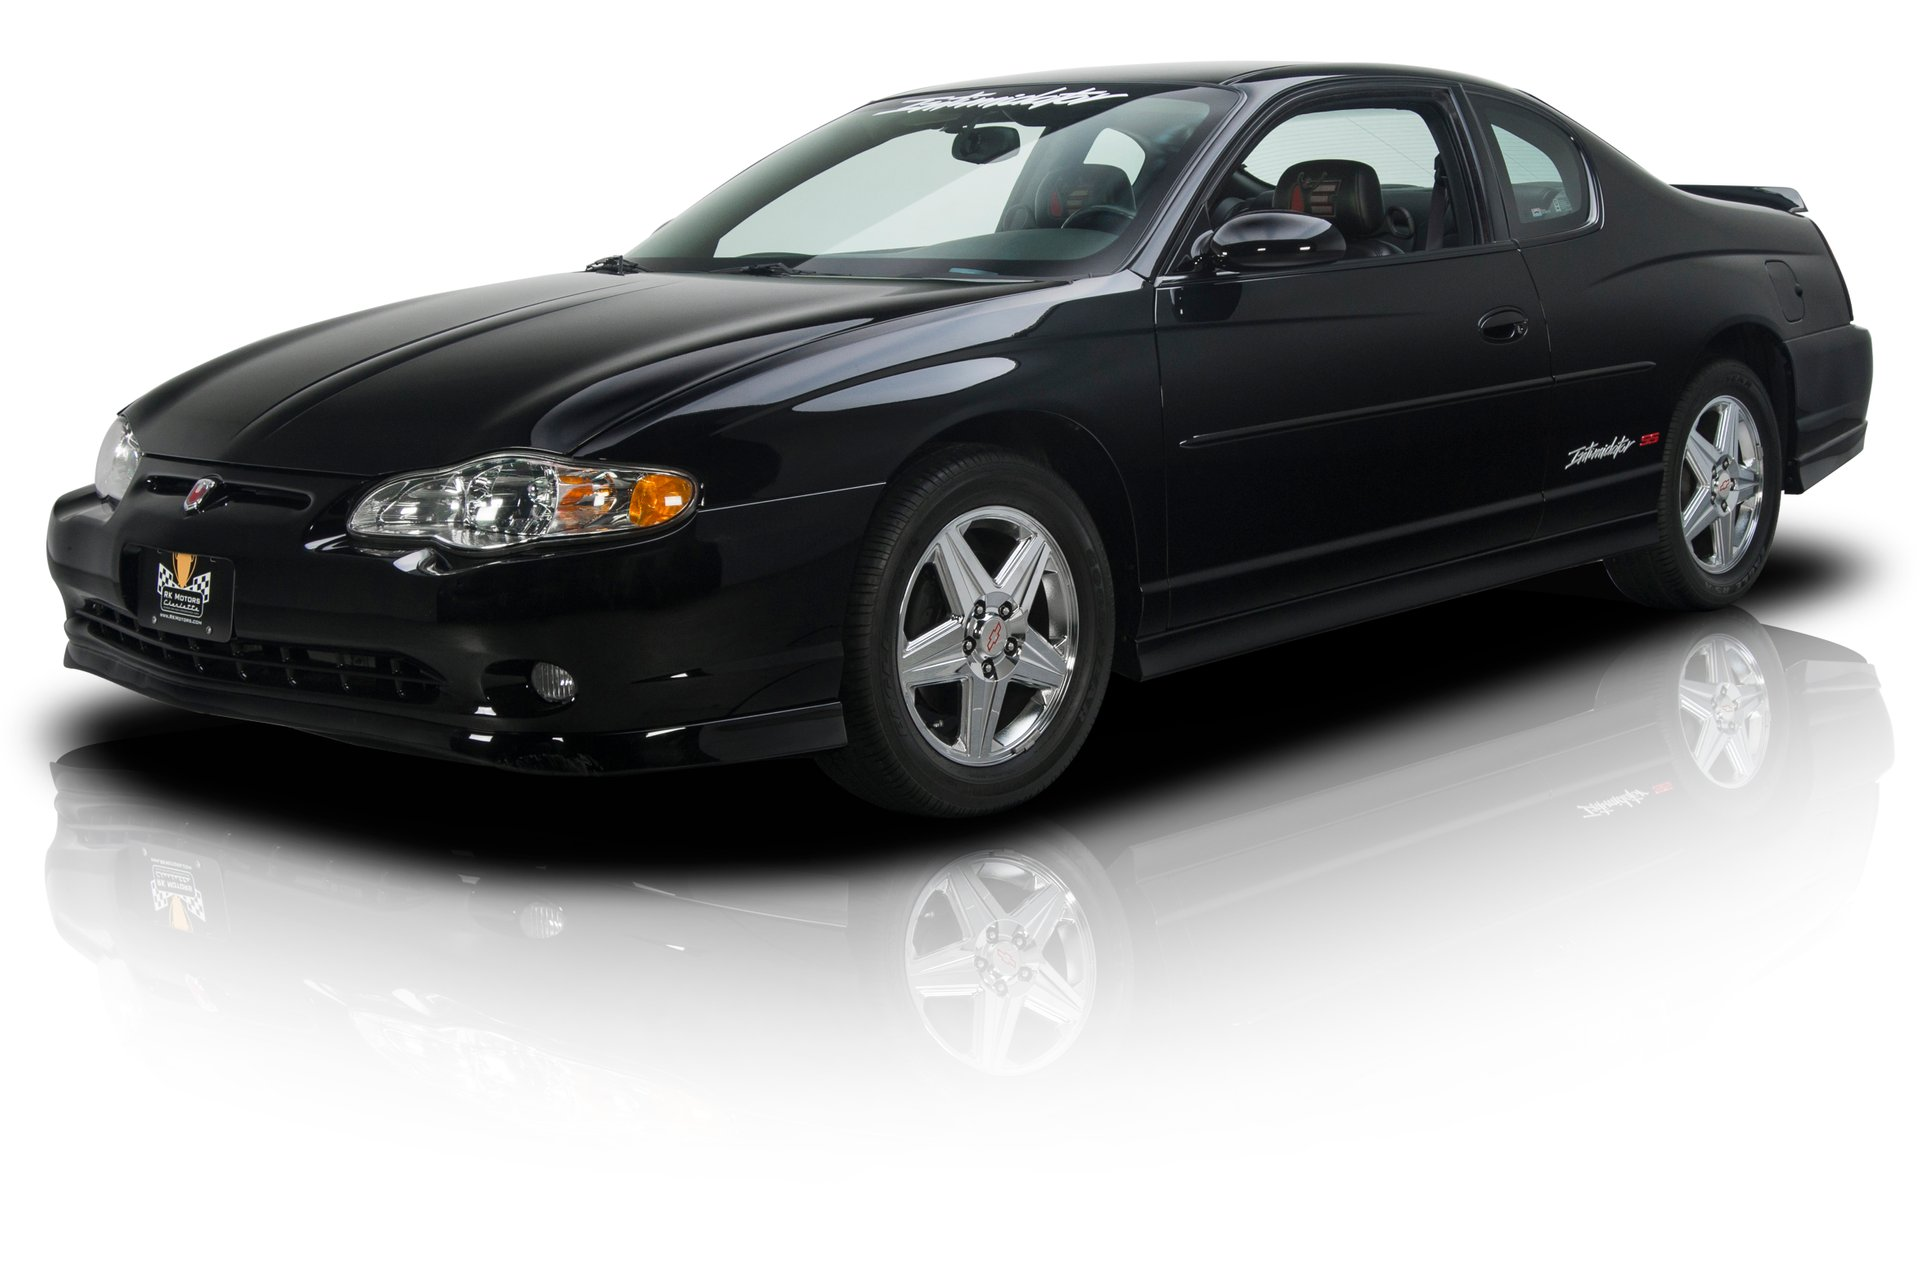 2004 chevrolet monte carlo intimidator ss